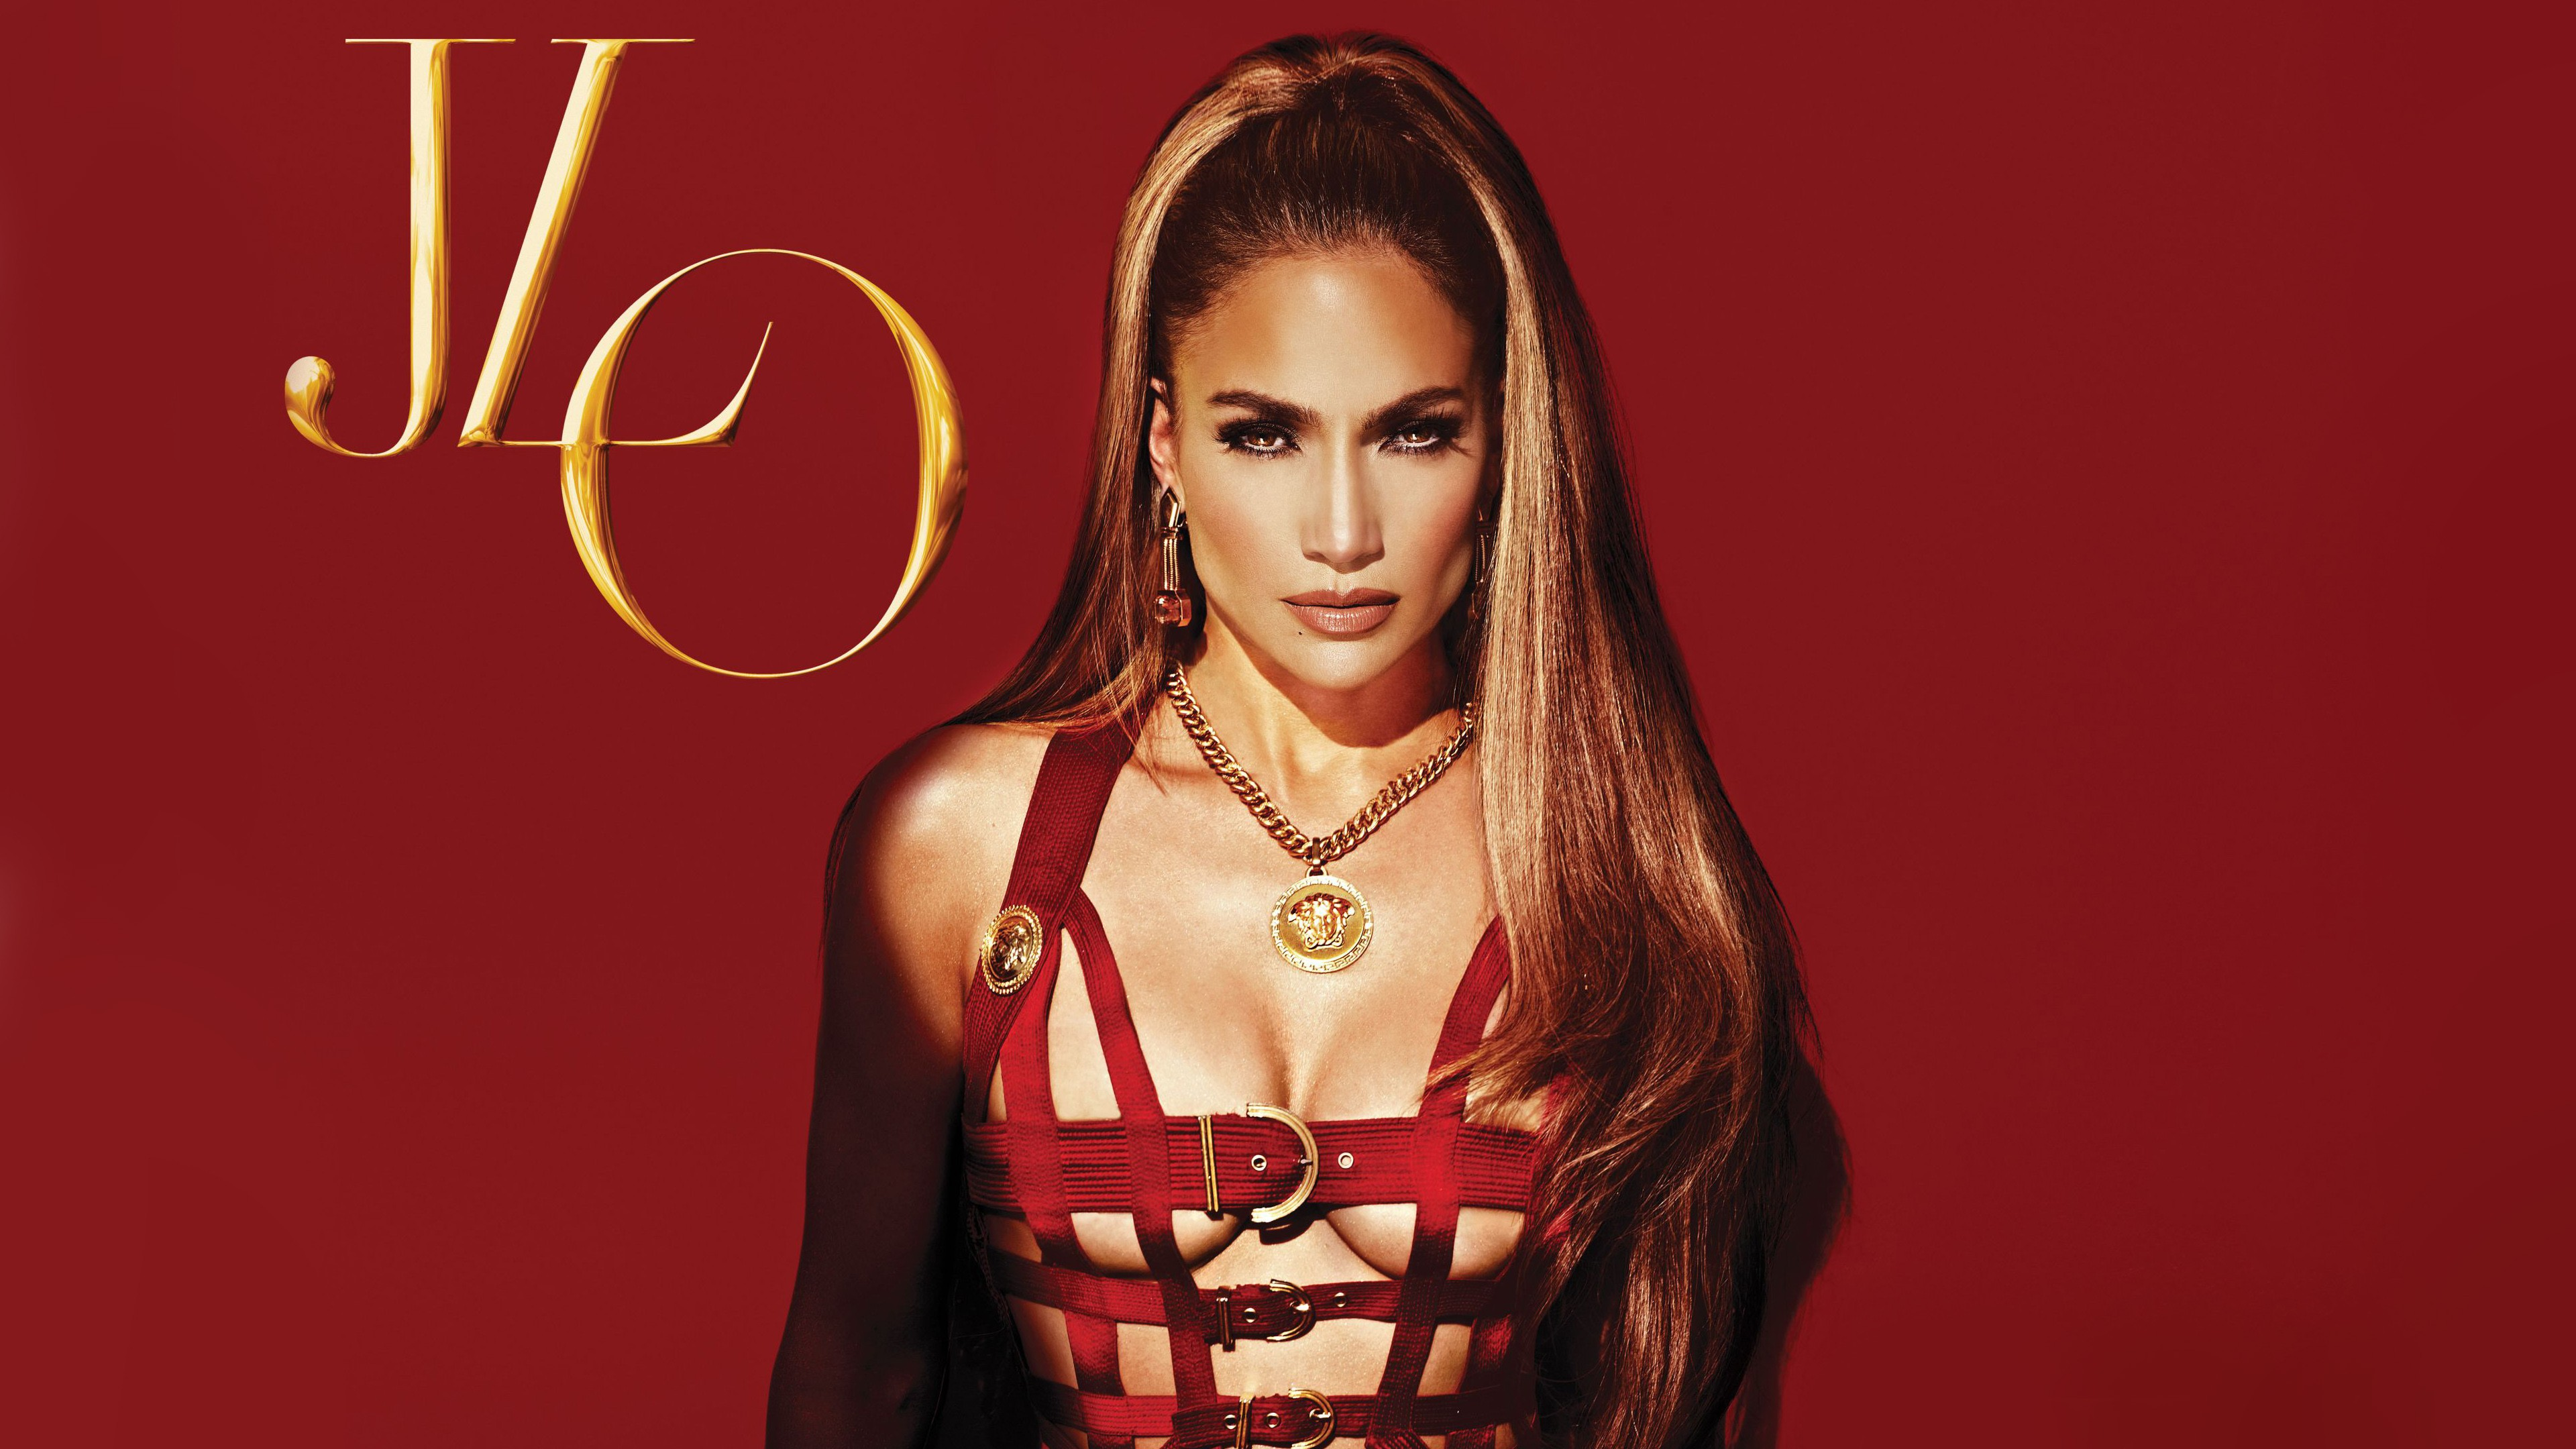 Cute Guns Wallpaper Jennifer Lopez Aka Wallpapers Hd Wallpapers Id 13592